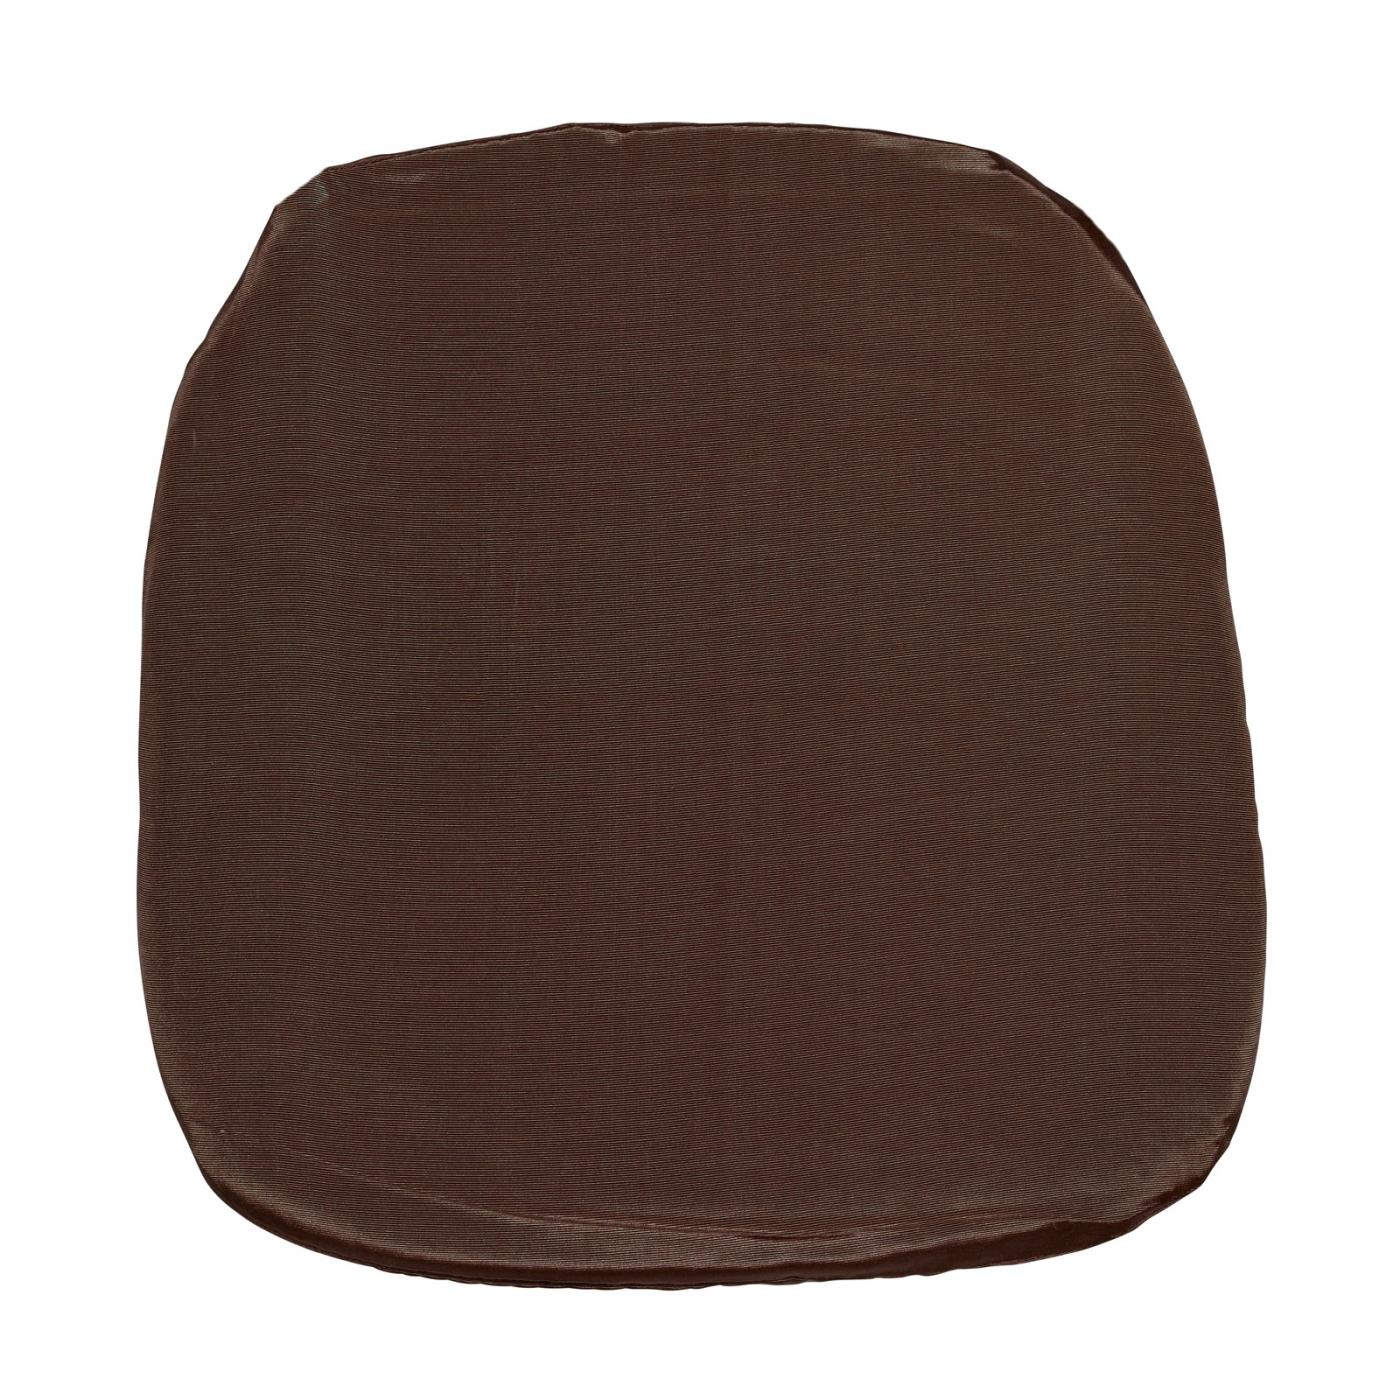 Bengaline Seat Cushion - Chocolate